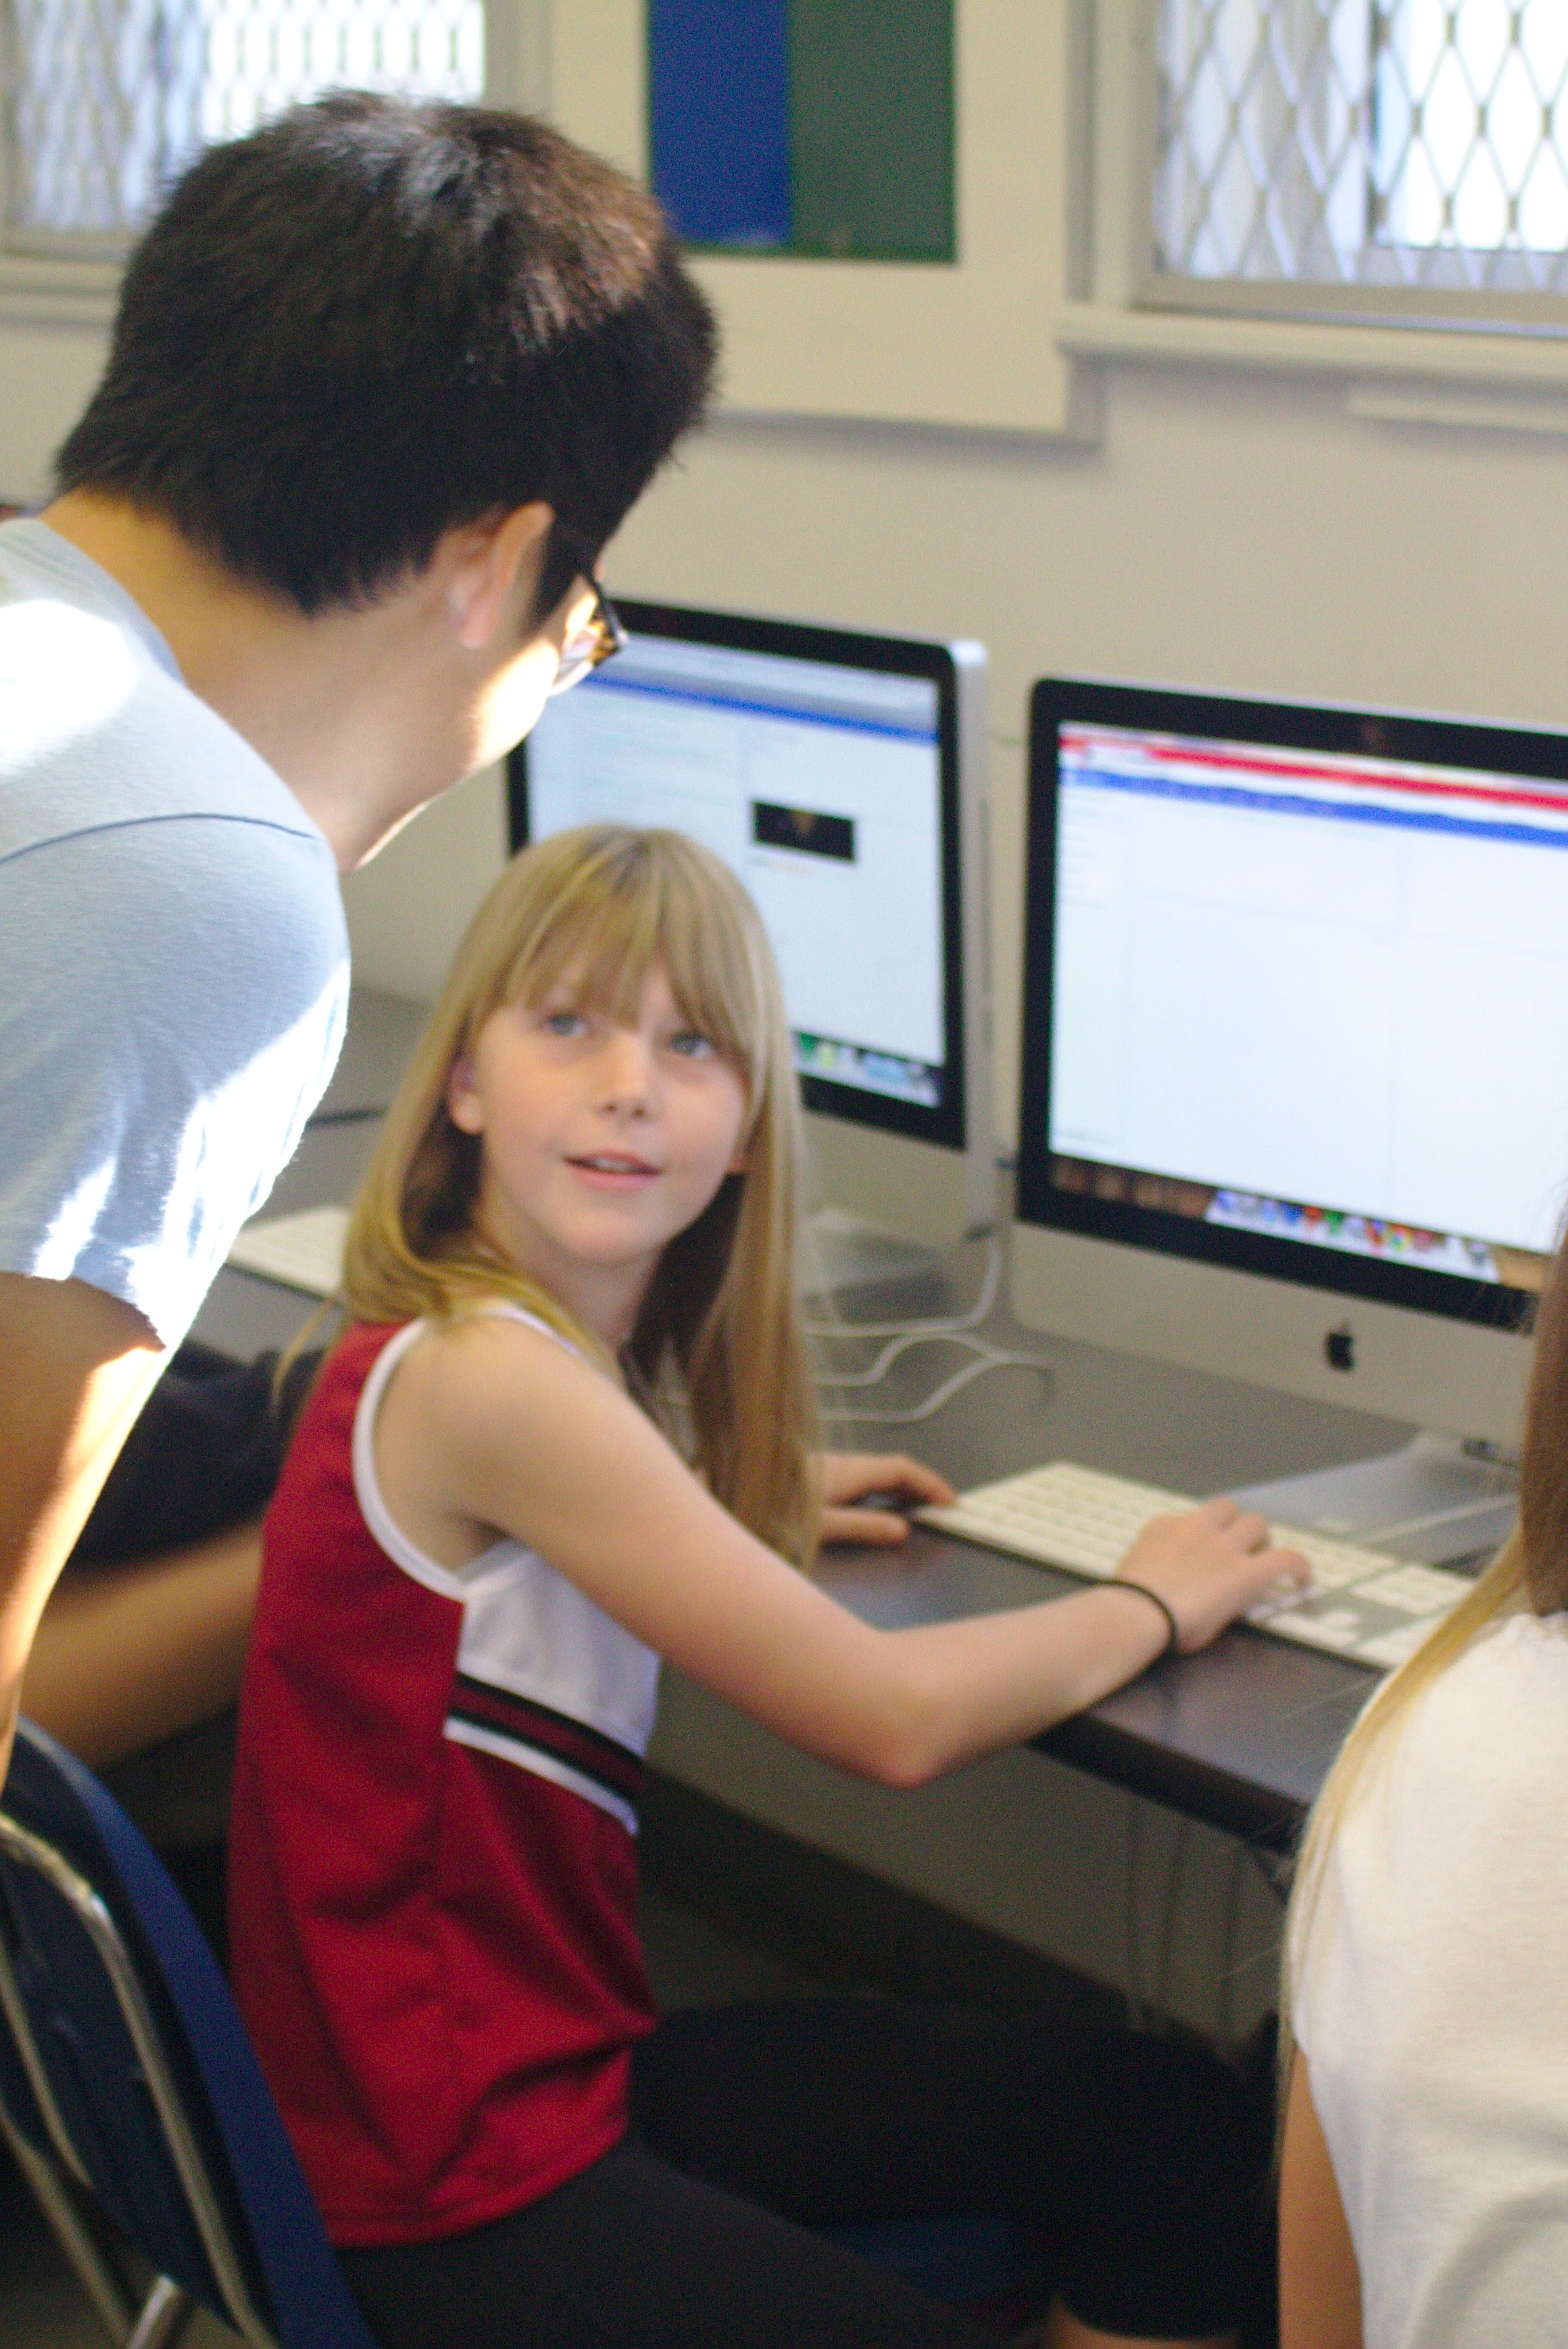 Summer Program - Robotics | FREE Online Coding Course & Tech Talk Series with Engineers at Google, SpaceX, Microsoft -with TCS through May 2020